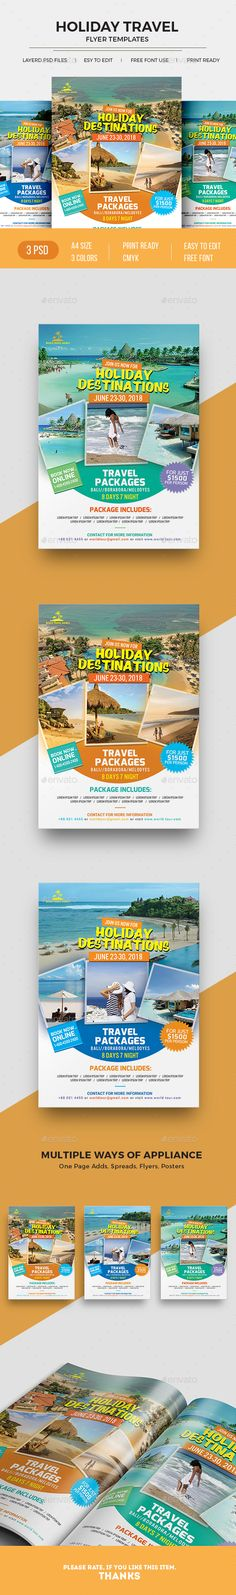 Tourism Events Calendar Flyer Template  Event Calendar Flyer